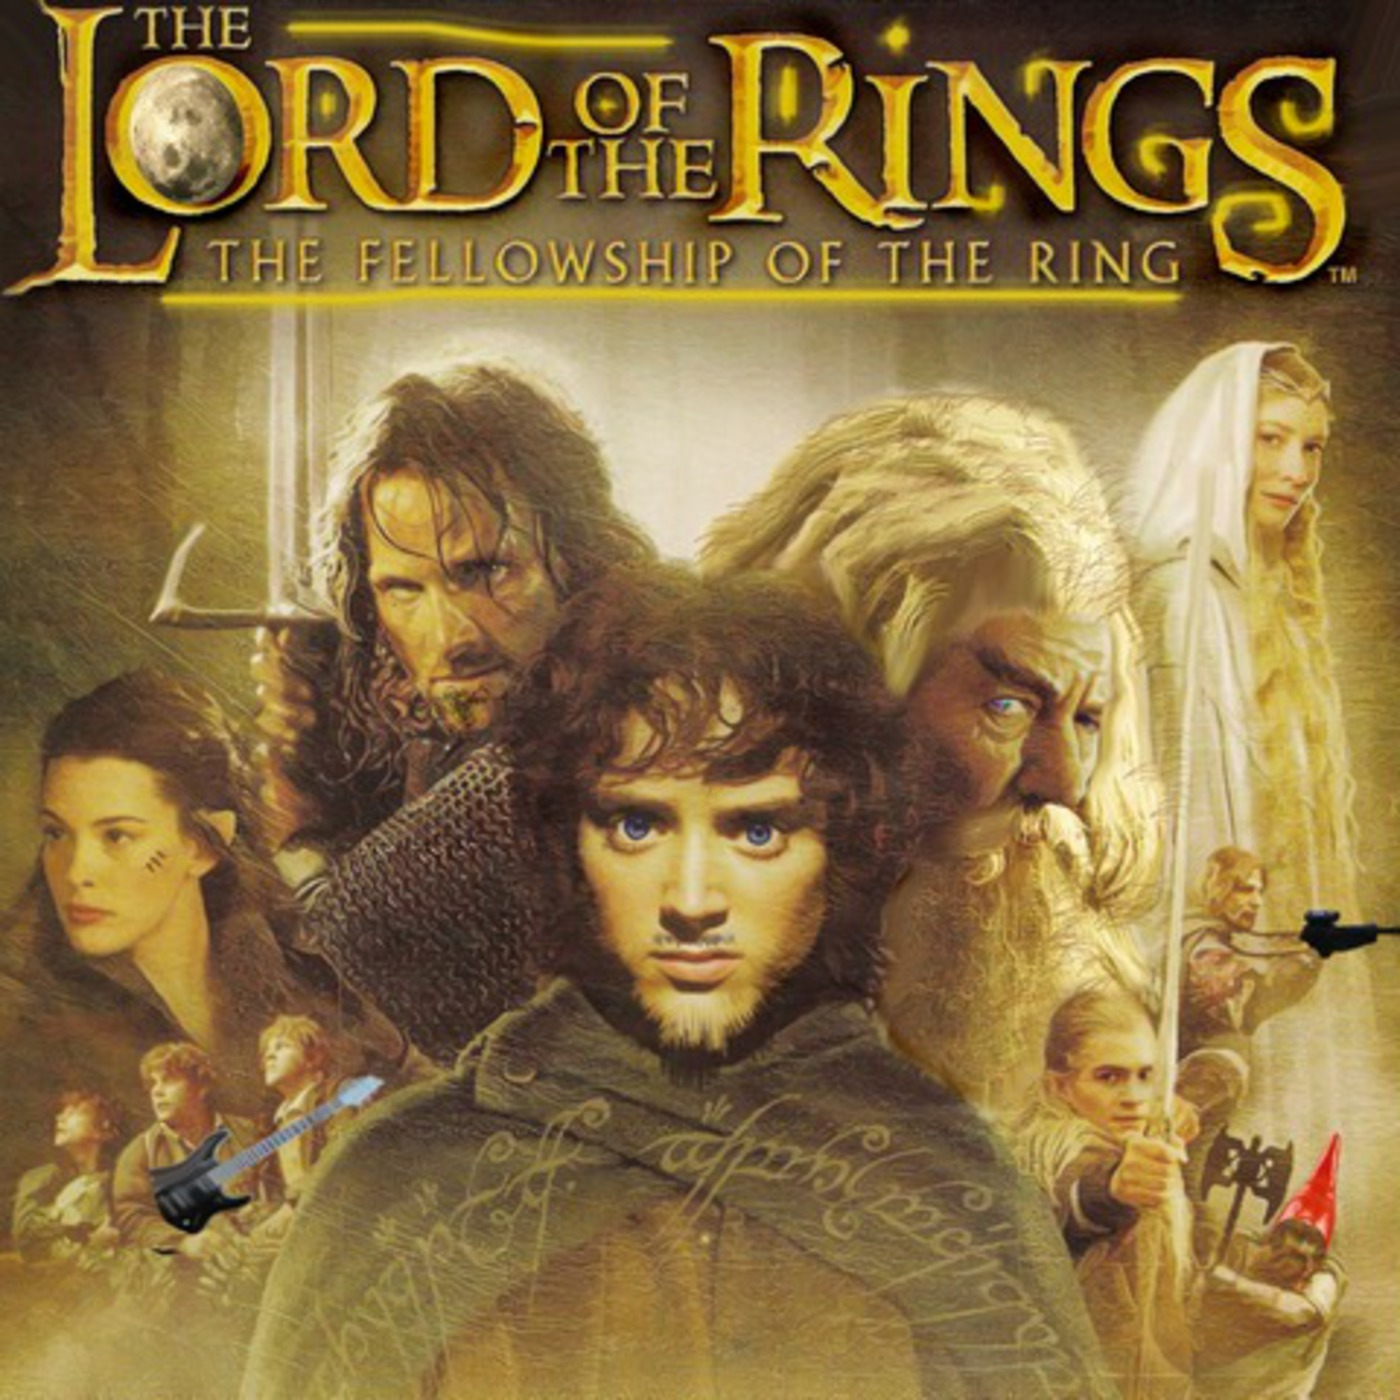 The Funny Lord of the Rings Podcast